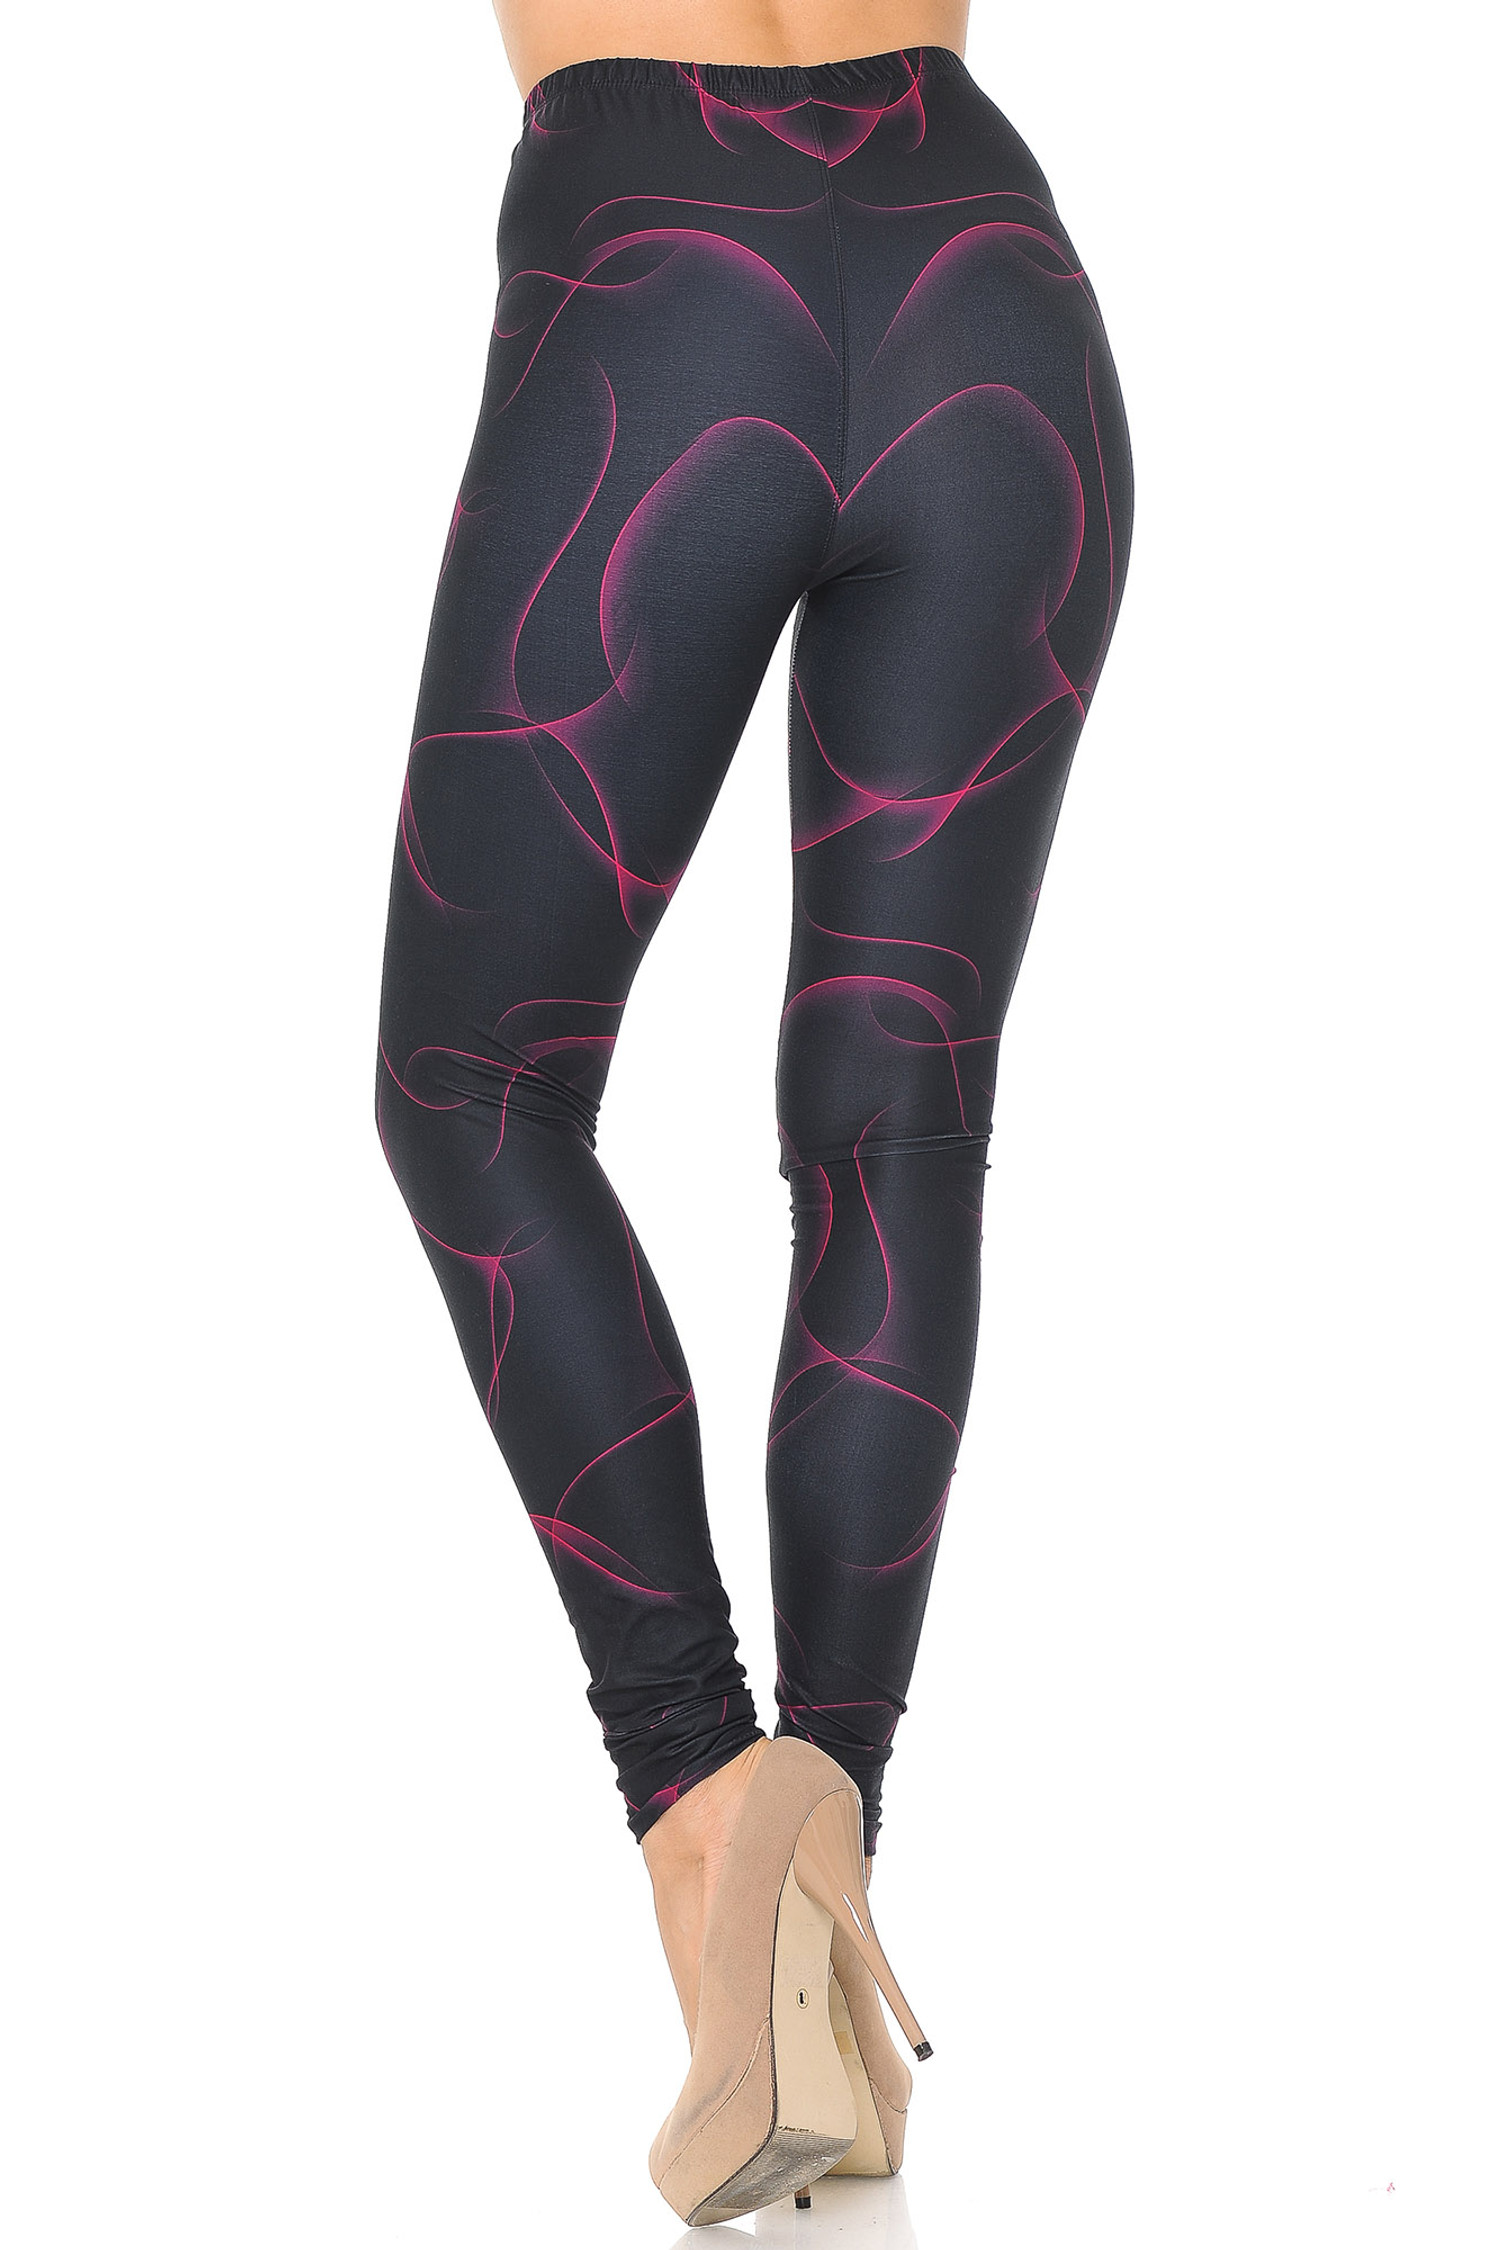 Creamy Soft Fuchsia Mist Extra Small Leggings - USA Fashion™